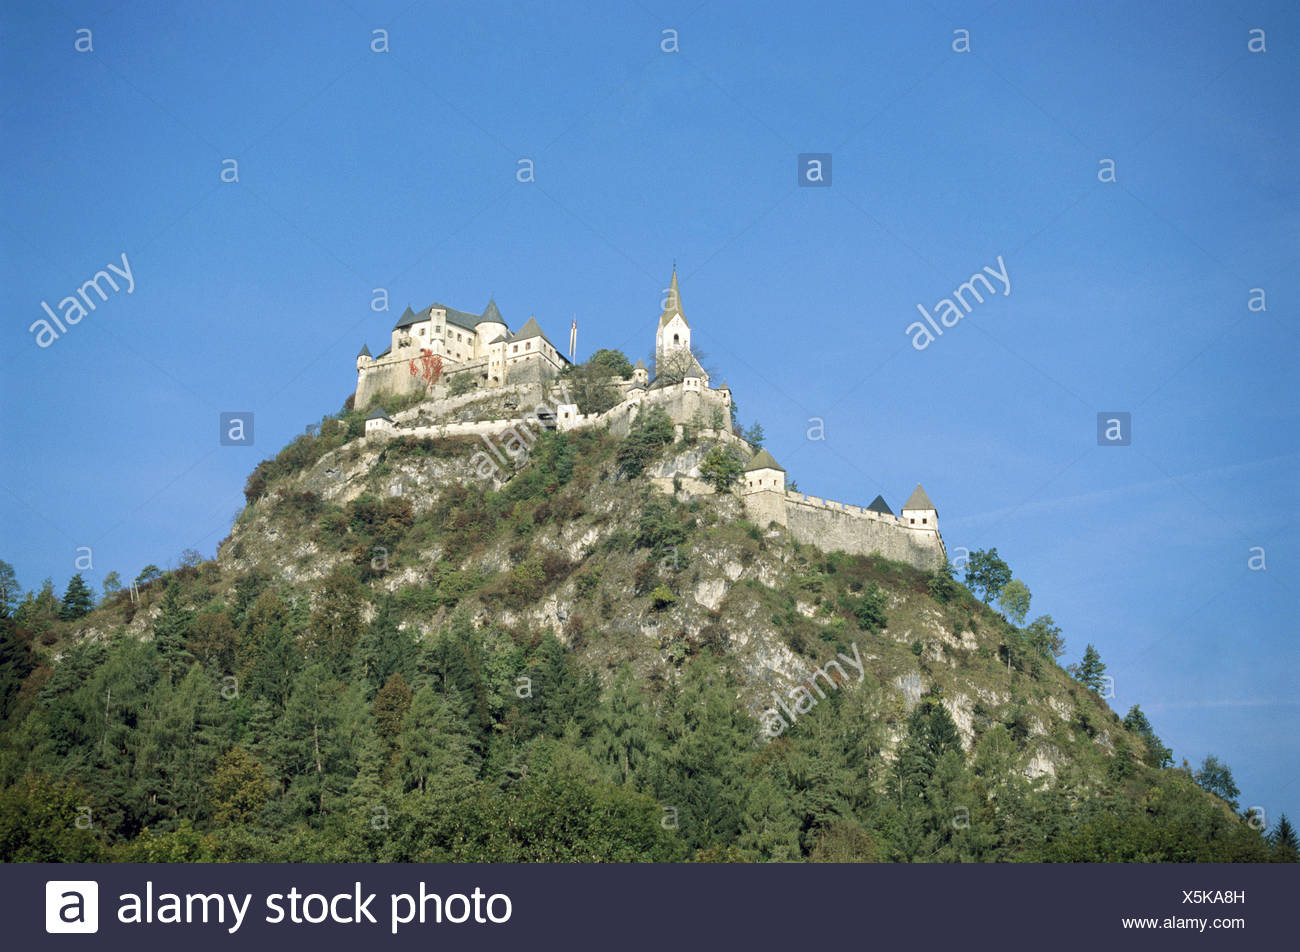 castle high Easter joke builds 1571 1586 Carinthia Austria Europe mountain - Stock Image